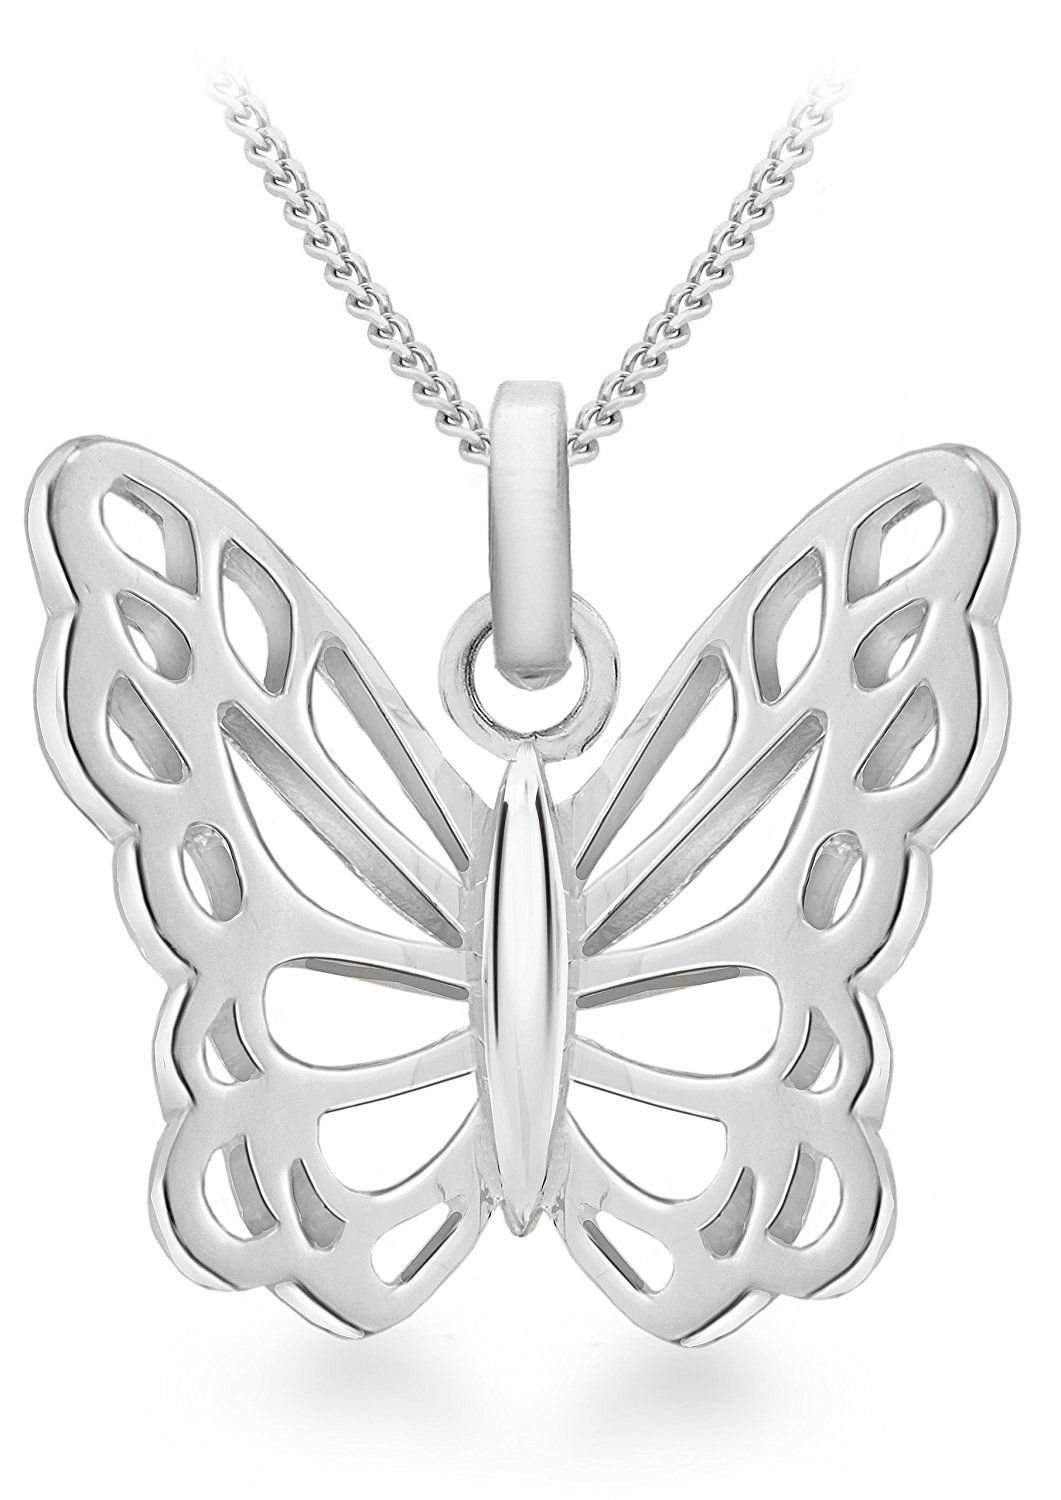 Tuscany Silver Sterling Silver MUM Butterfly Pendant on Curb Chain of 46cm/18 KrAxKPDgmg